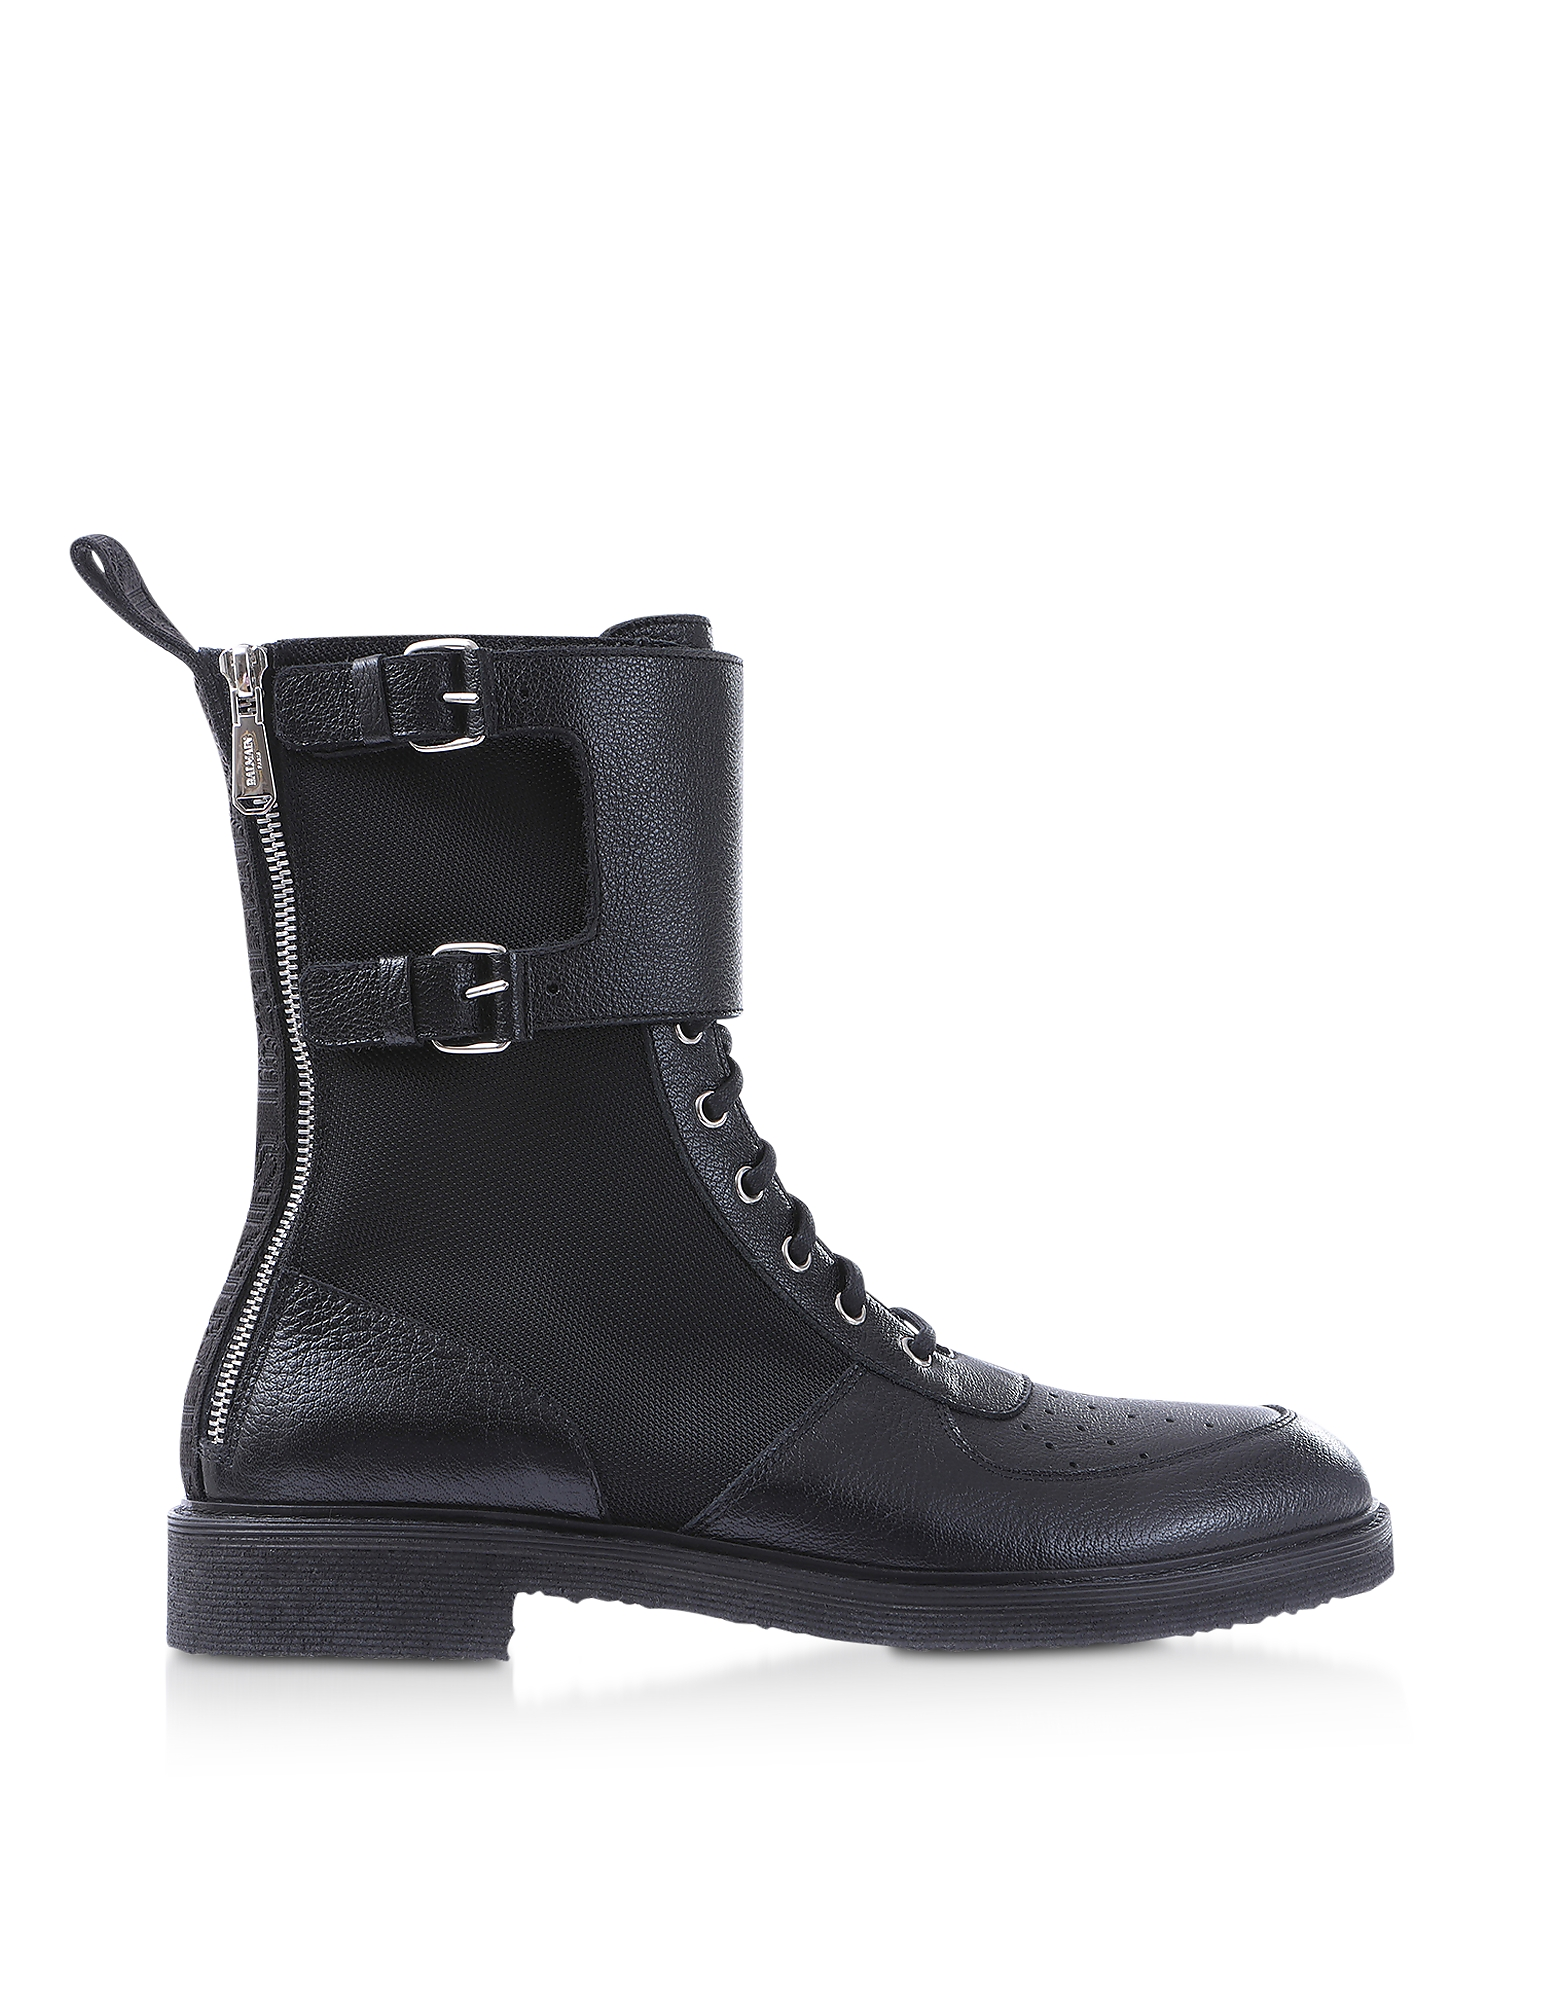 Balmain Designer Shoes, Leather & Nylon Maddox Ranger Boot